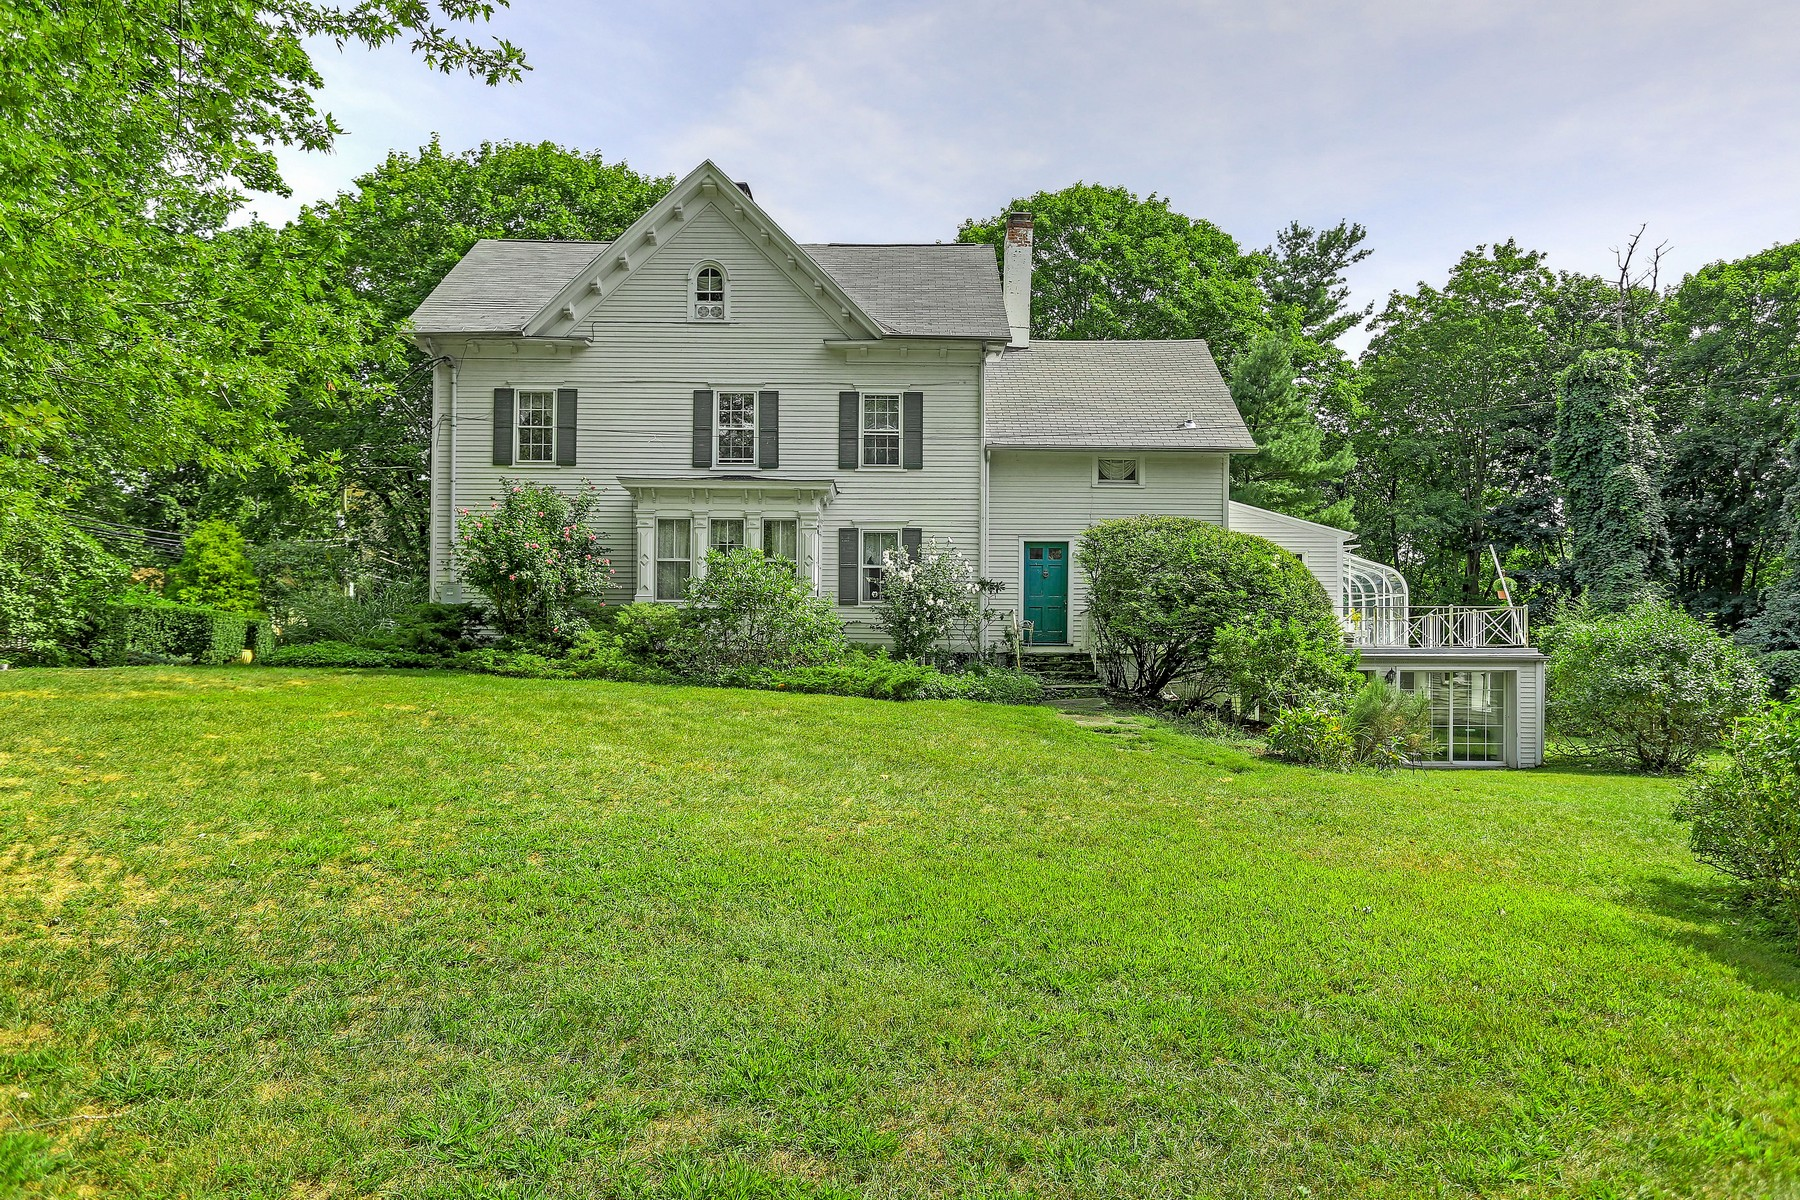 一戸建て のために 売買 アット Wonderful Victorian Farmhouse with Cottage and Boathouse 244-244a Greens Farms Road Westport, コネチカット, 06880 アメリカ合衆国